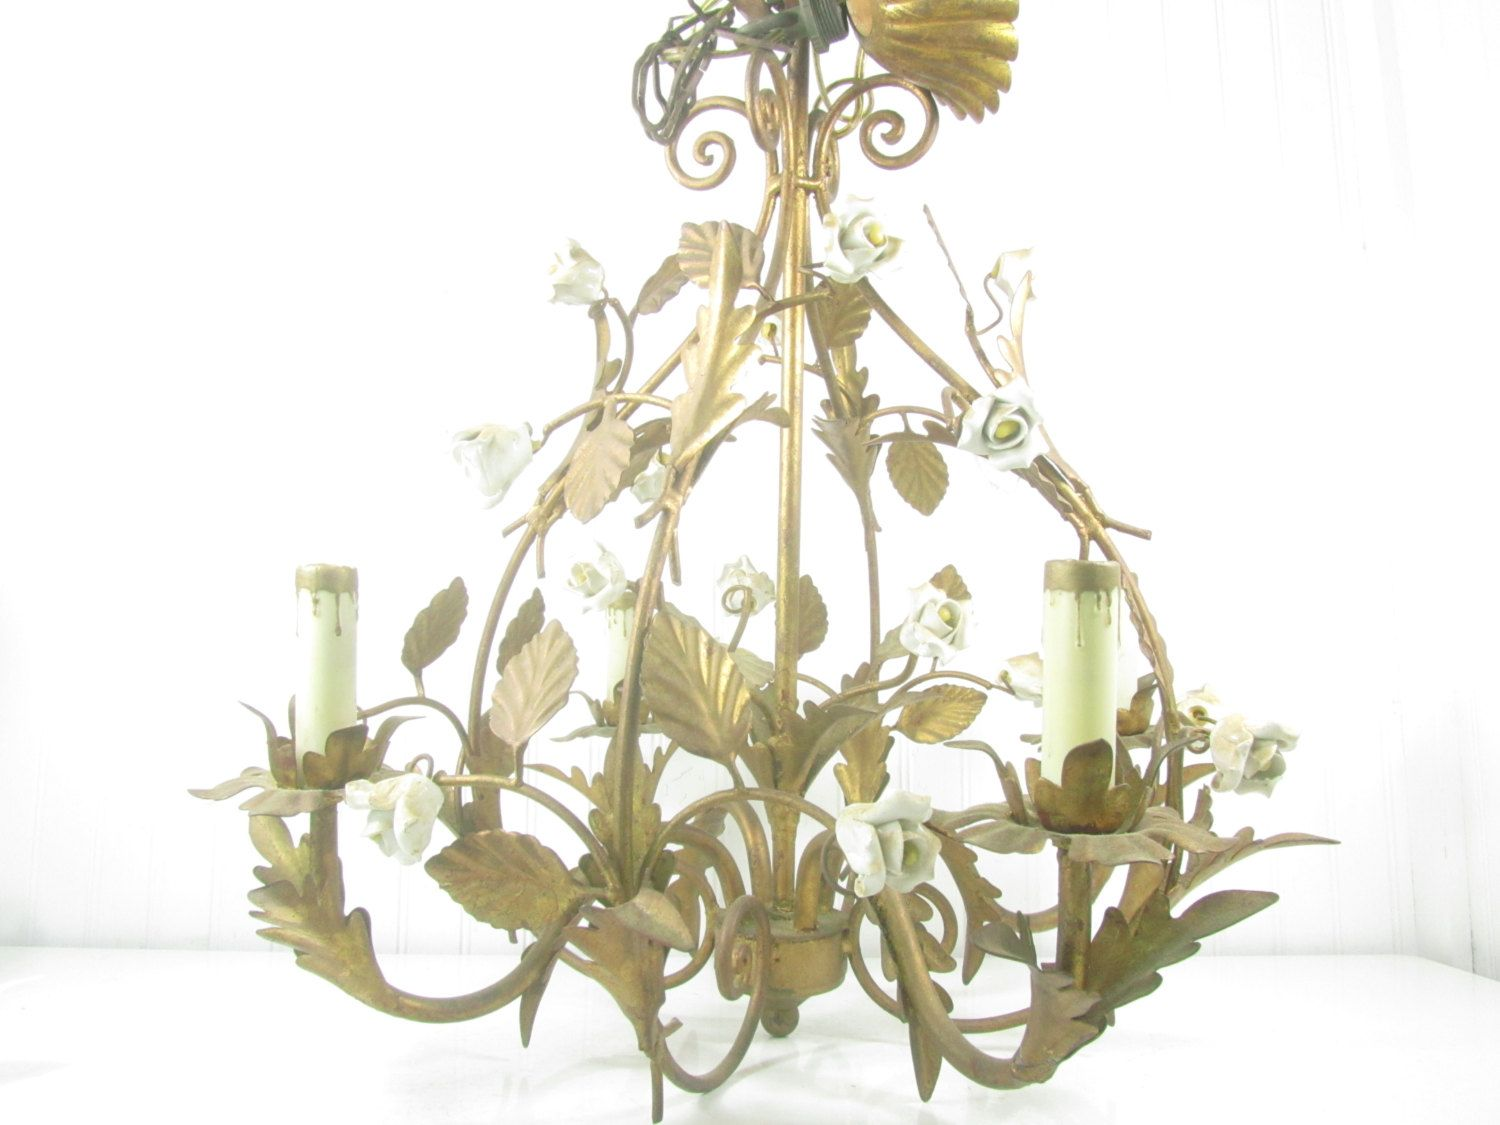 Vintage tole chandelier shabby chic chandelier hanging light vintage tole chandelier shabby chic chandelier hanging light vintage lightgold guild gilt italian tolefrench decorlighting arubaitofo Image collections